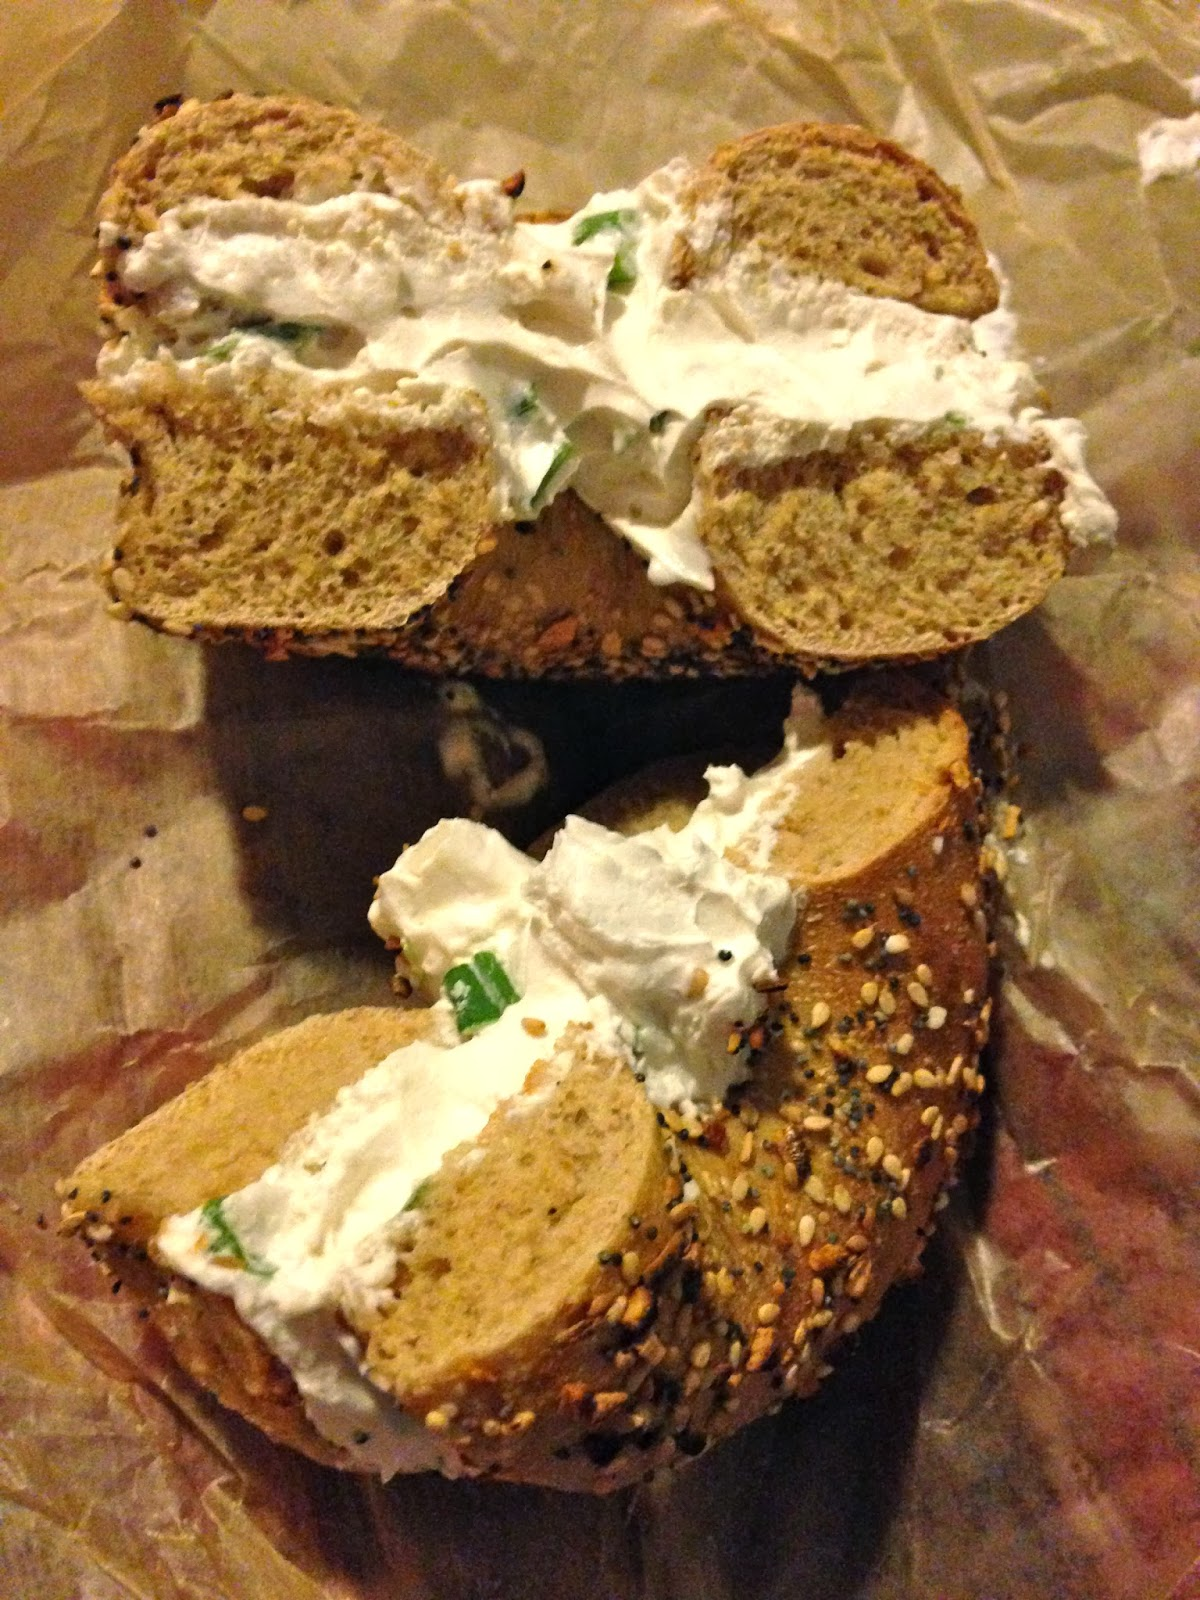 Whole Wheat Everything Bagel with Tofutti Scallion Cream Cheese H&H Midtown Bagels East Vegan Veega